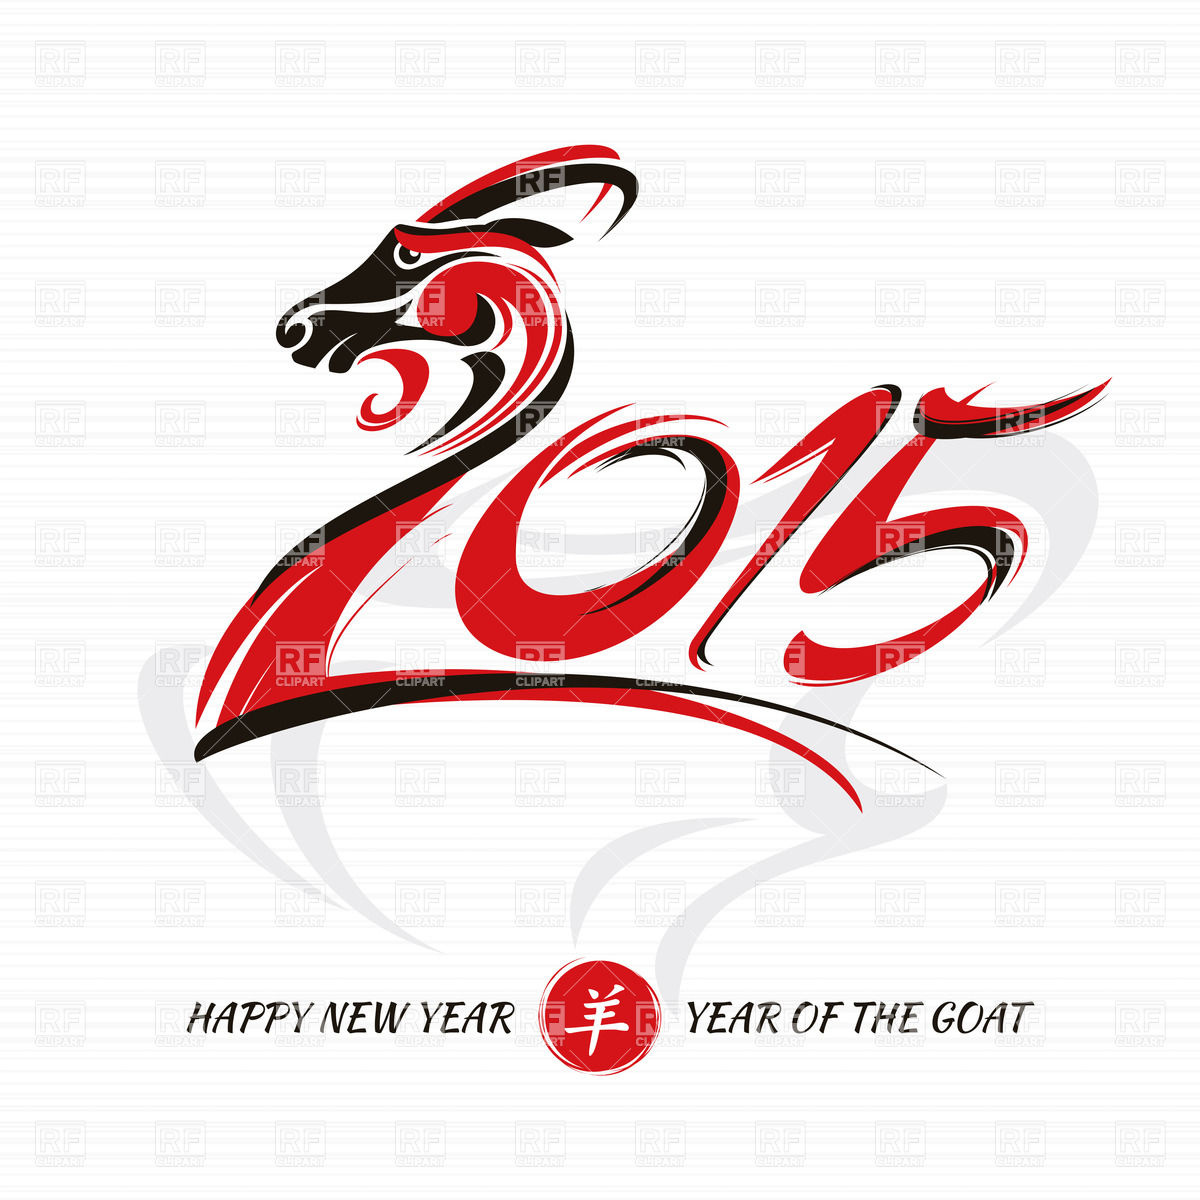 New Year Clipart Free Download